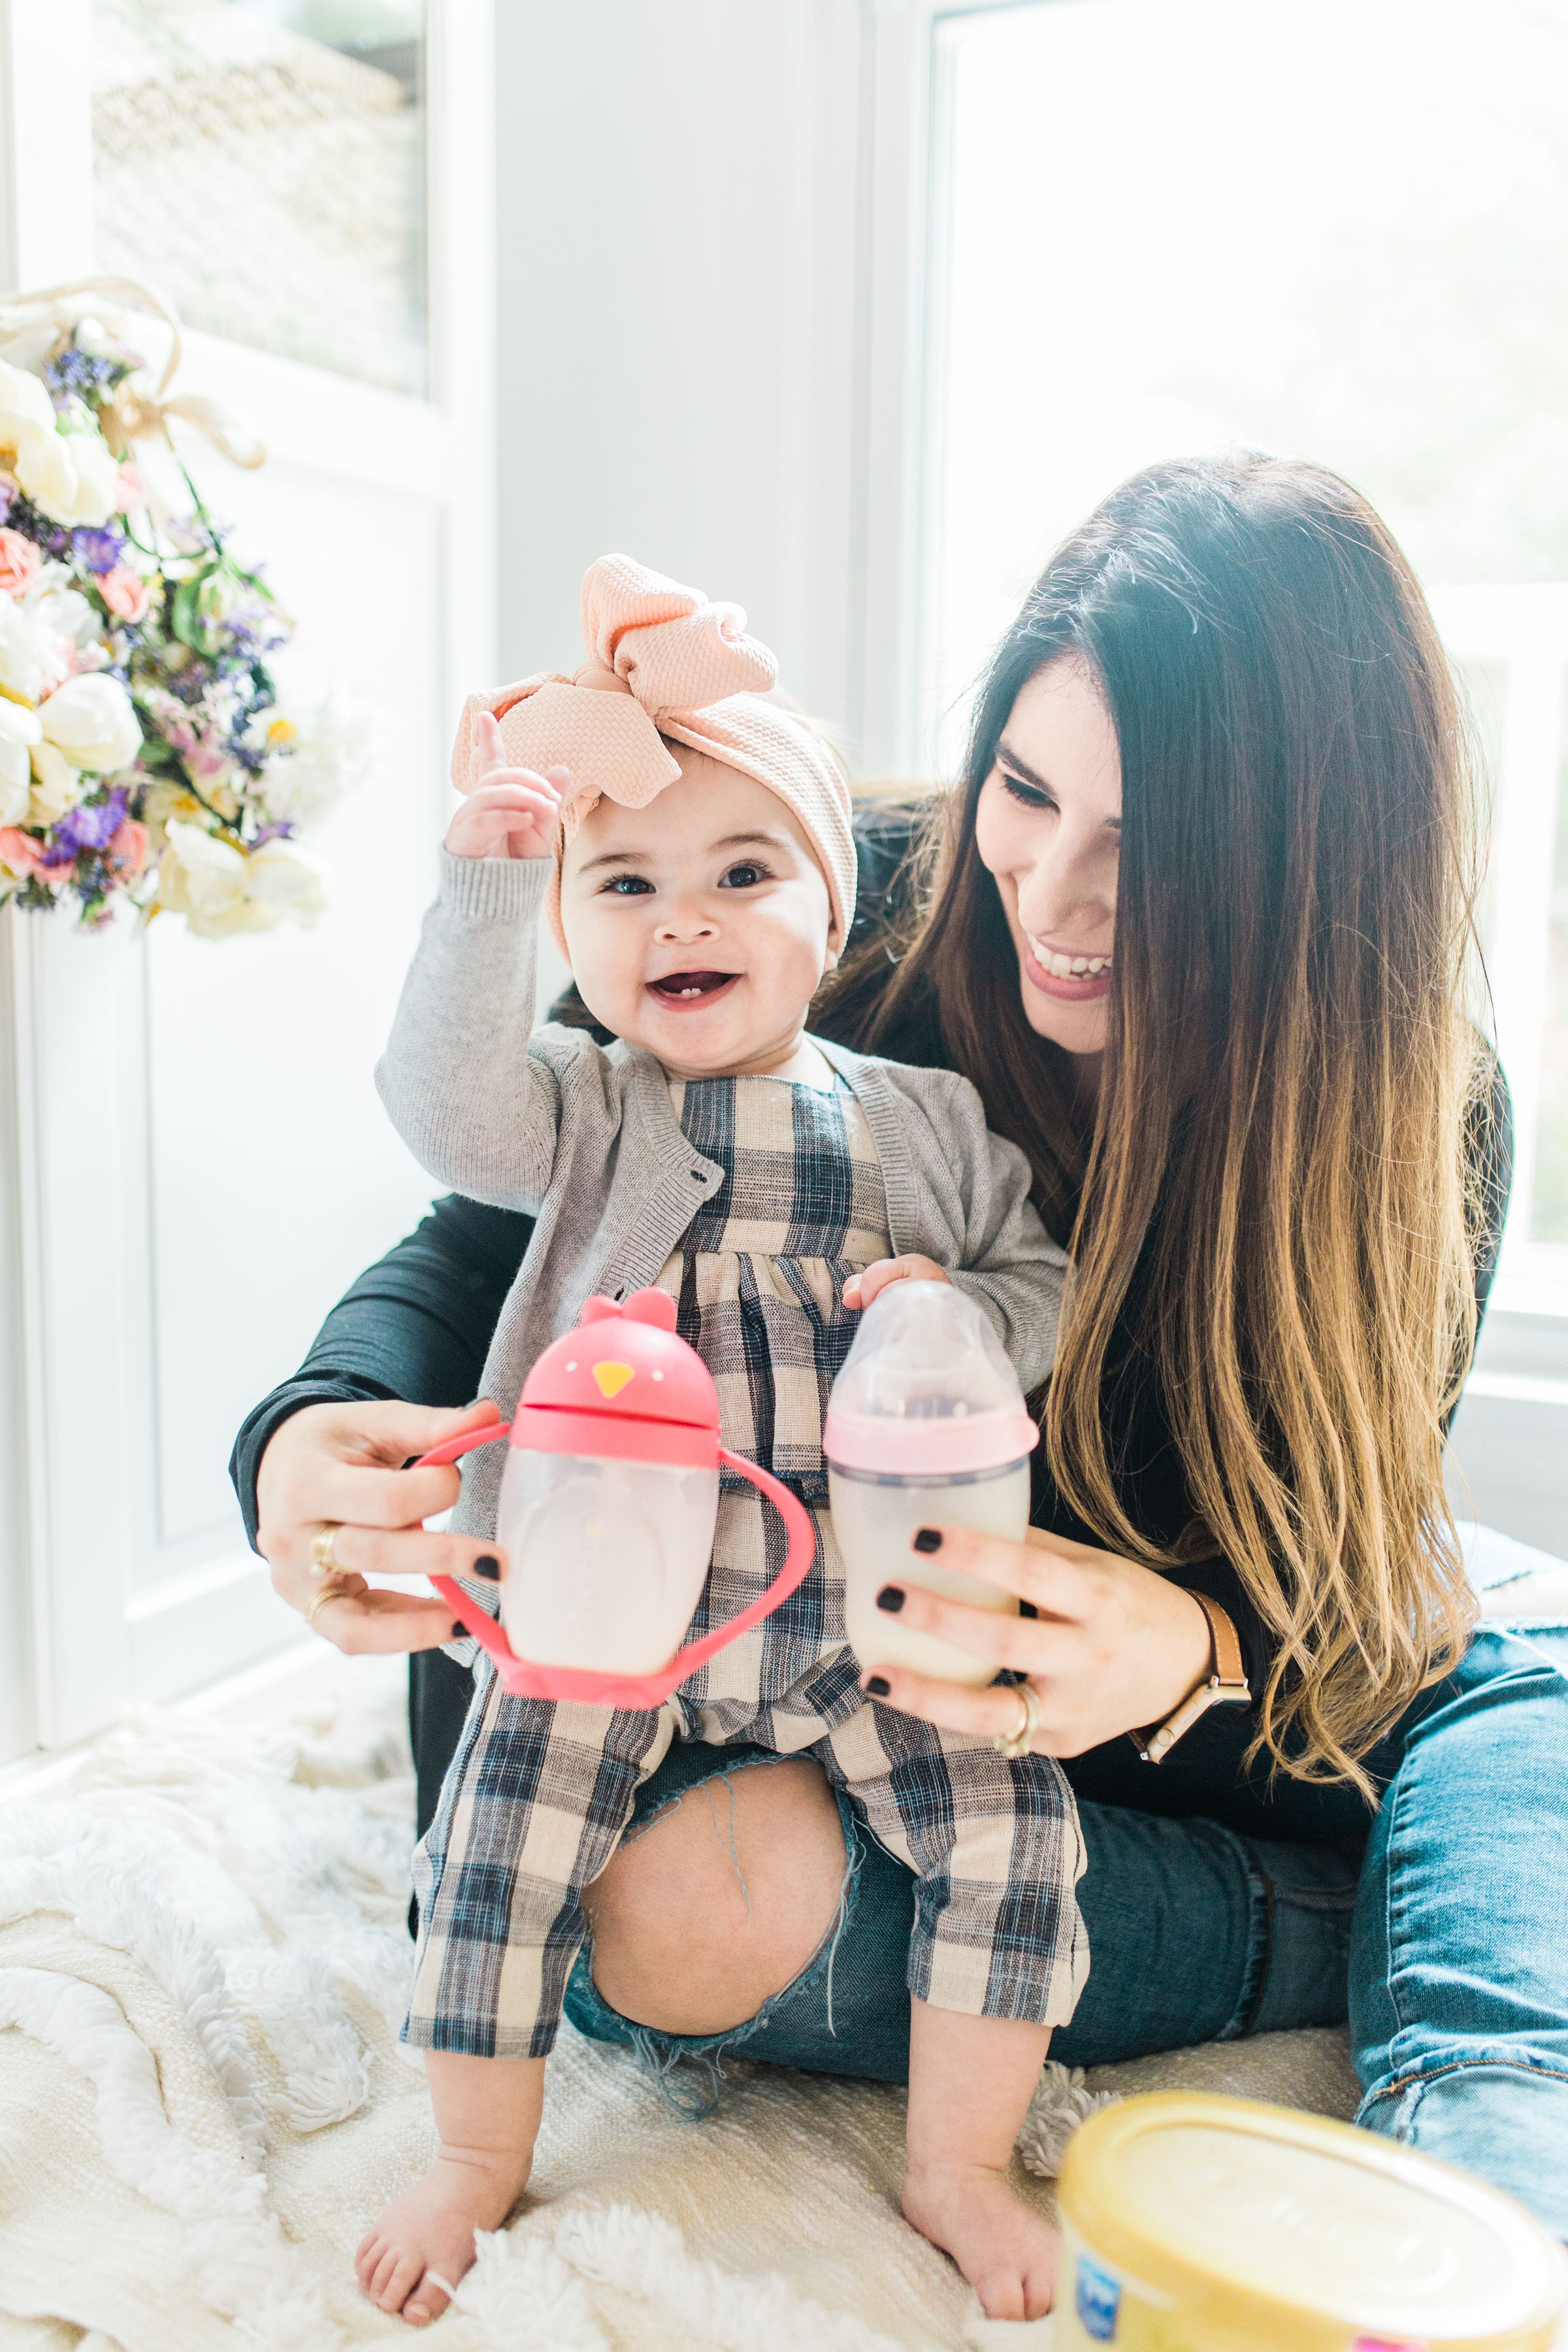 Transitioning your baby from a bottle to a sippy cup CAN be stress-free and fun; and we're breaking down exactly how you can make the switch in just a few easy steps. You've got this, mama. Click through for the details. #baby #sippycup #bottle | glitterinc.com | @glitterinc